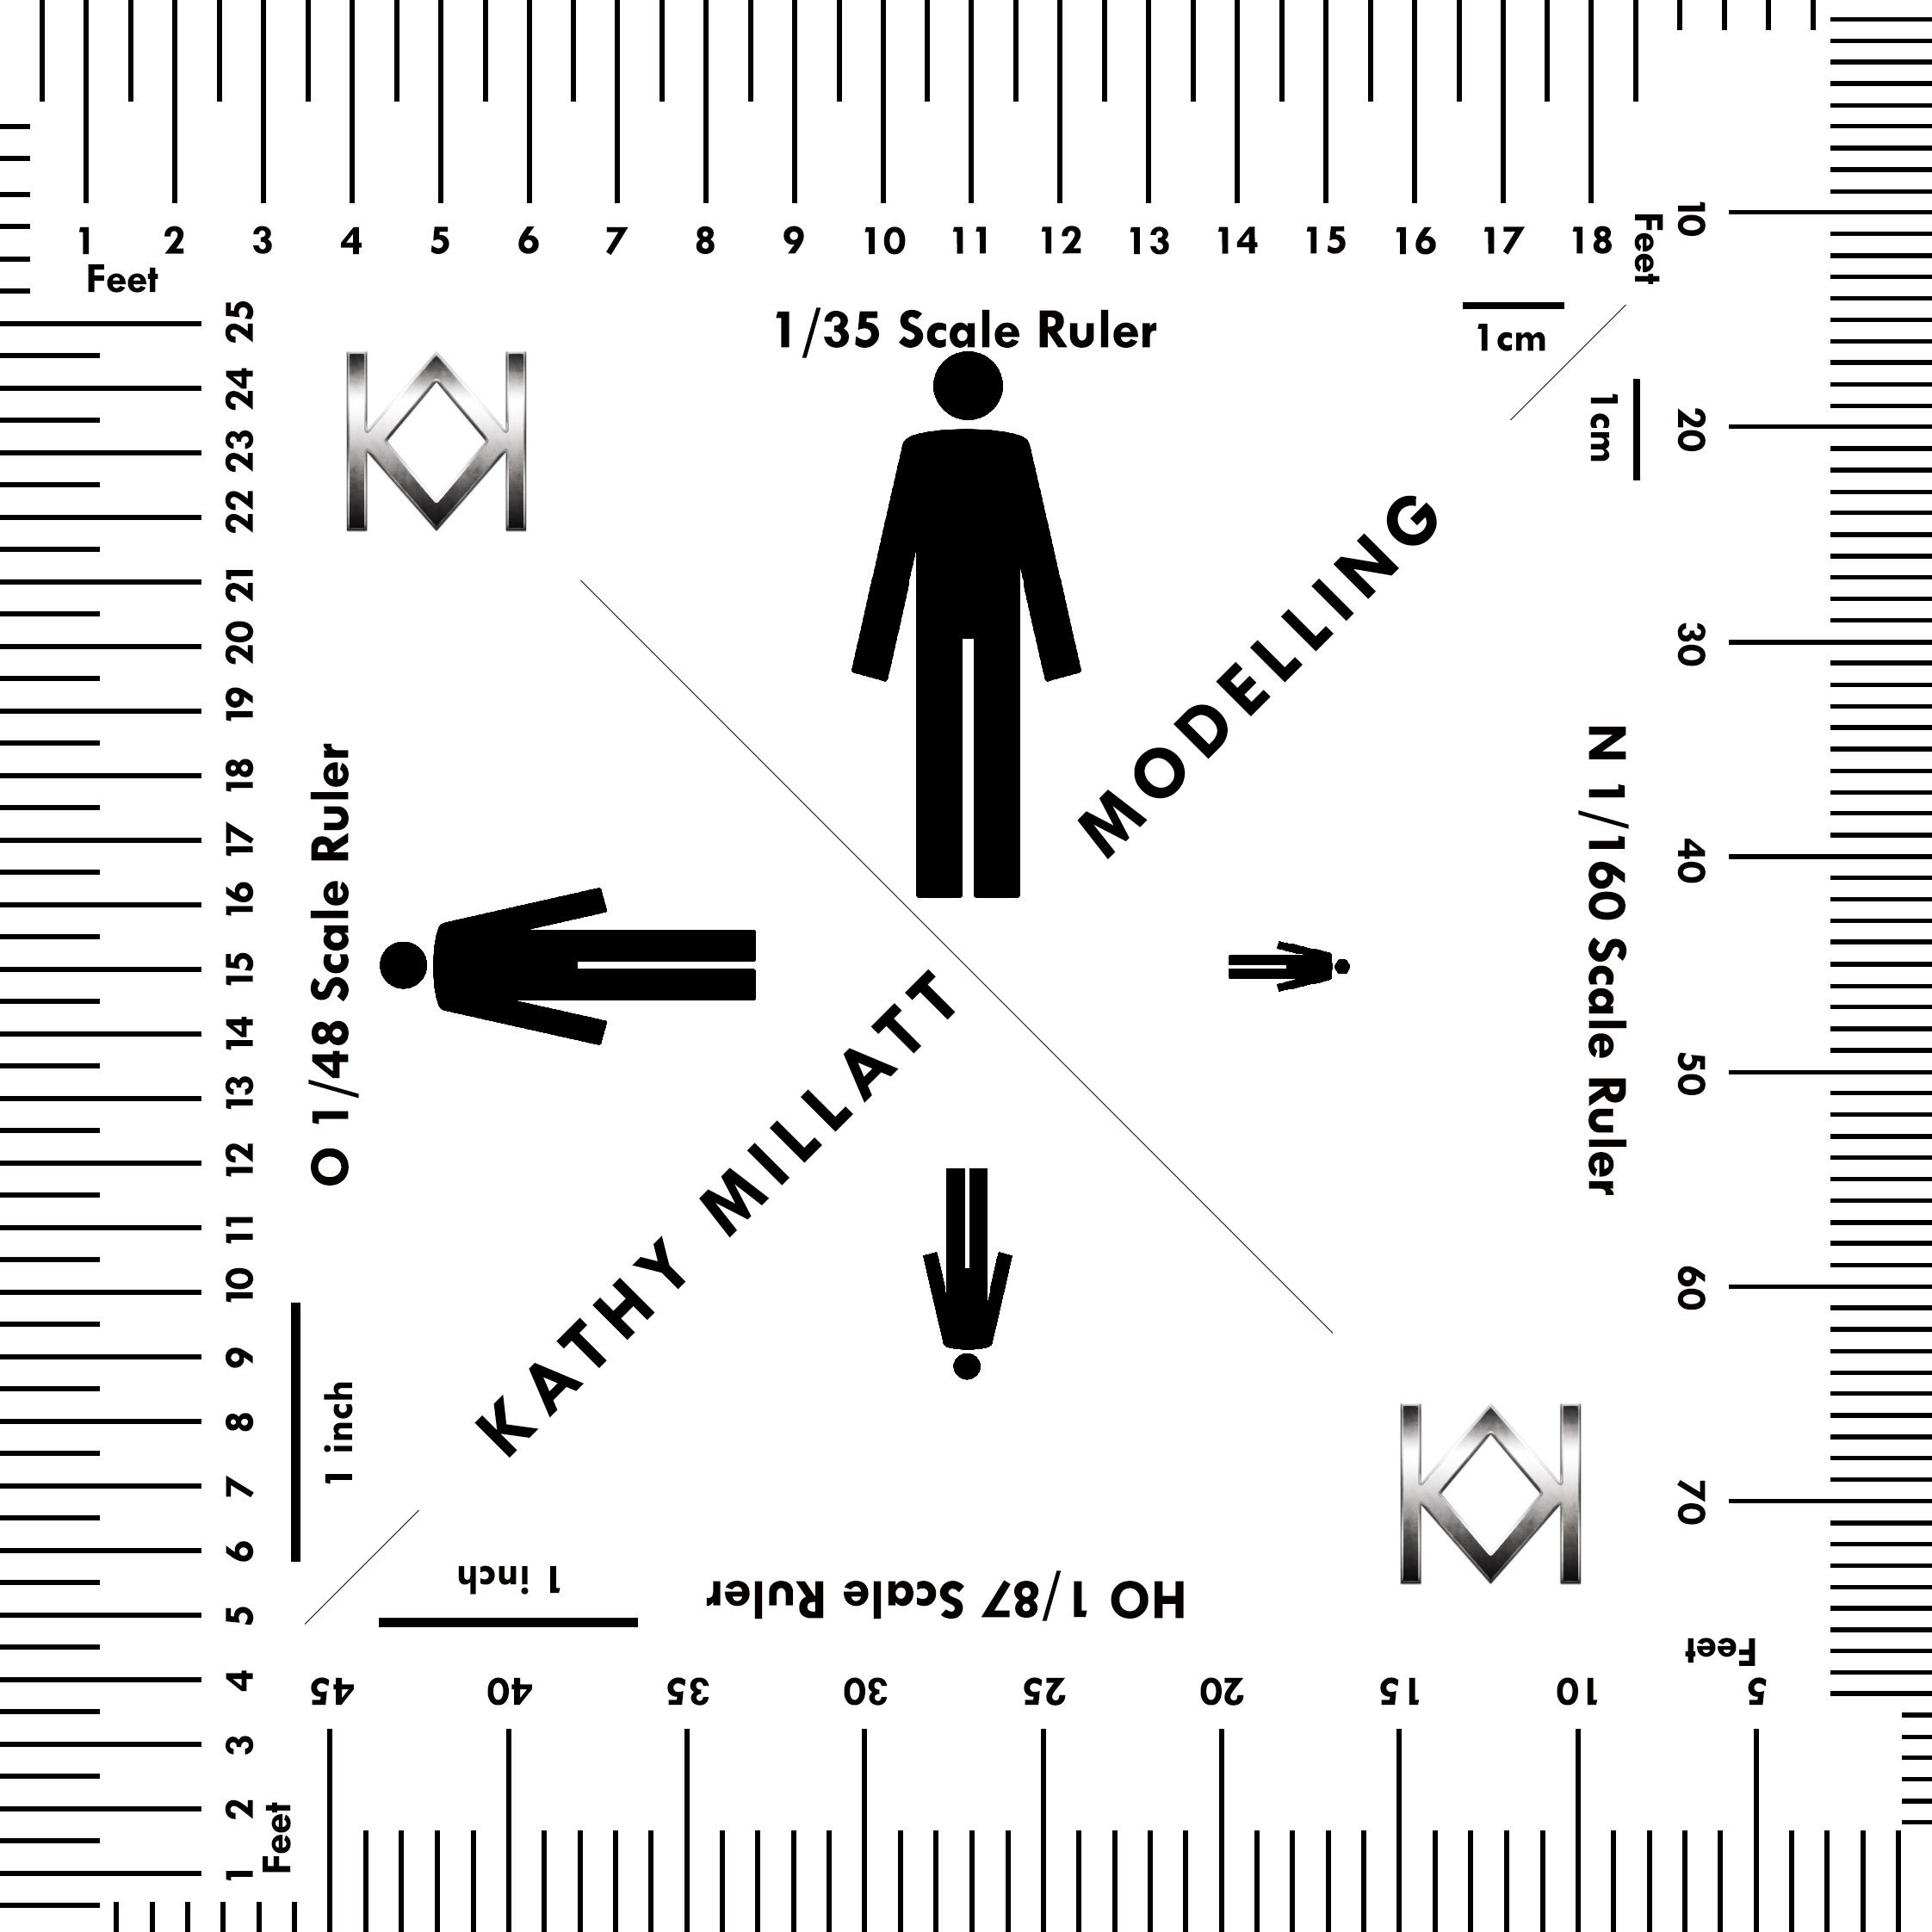 Modelling Water: Scale Ruler - Man | Scale